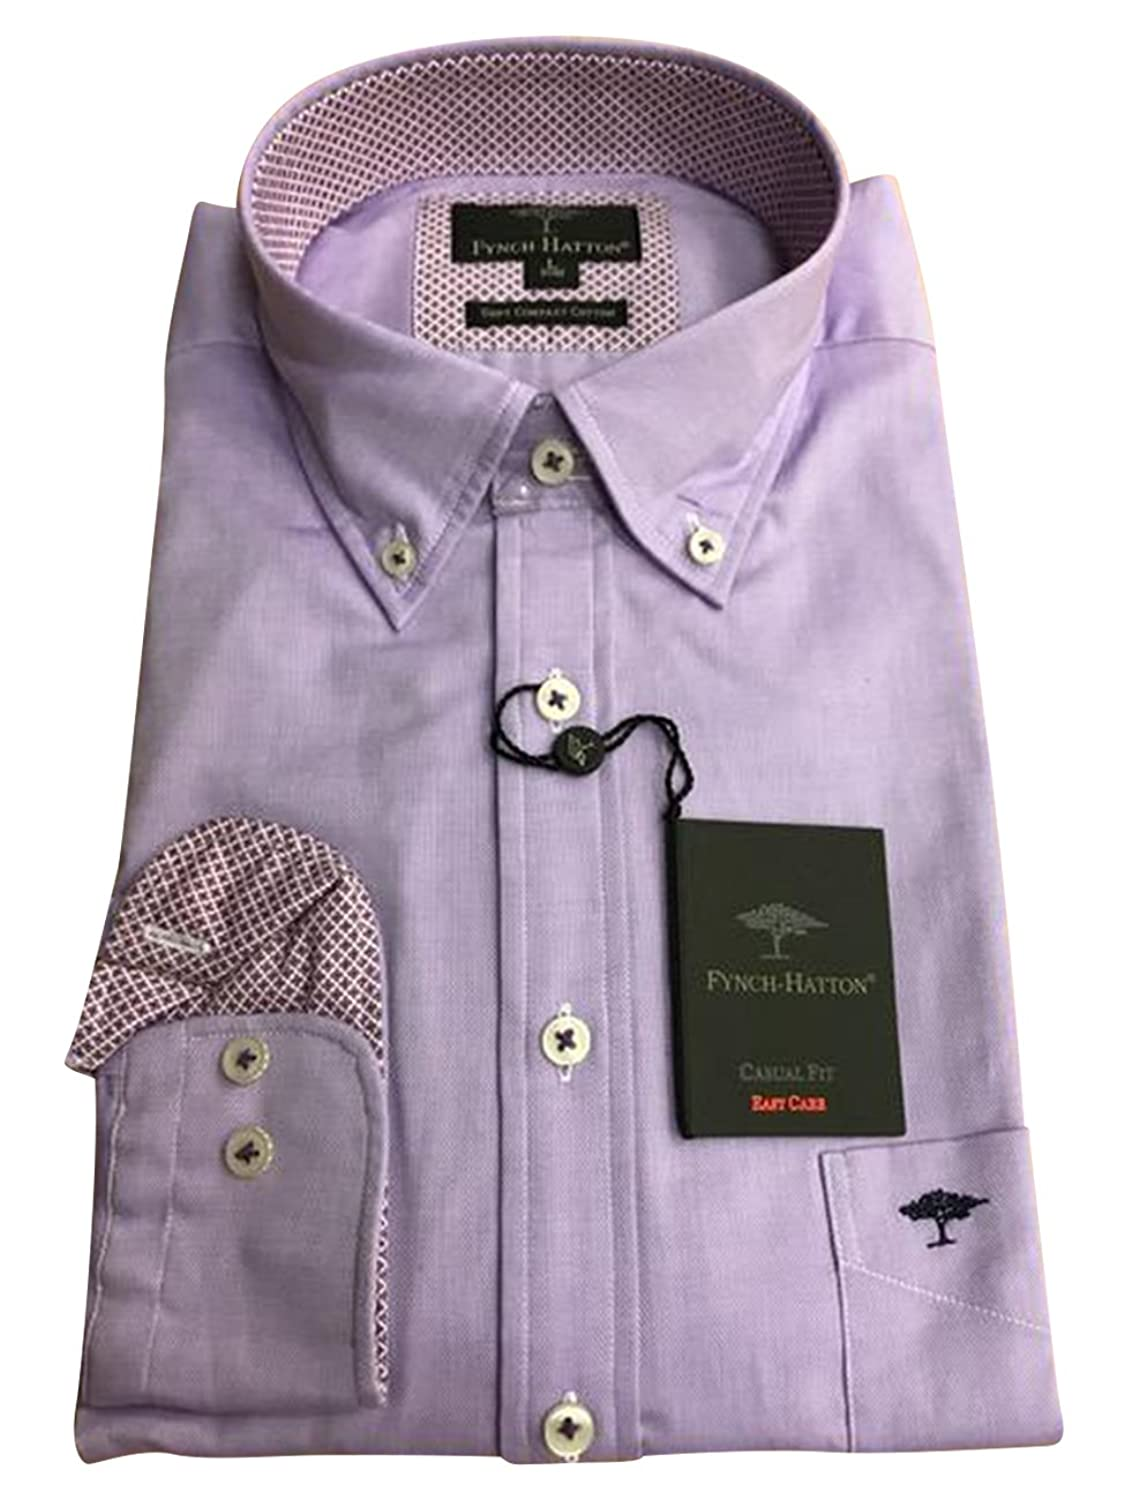 FYNCH-HATTON Men's Button Down Long Sleeve Casual Shirt